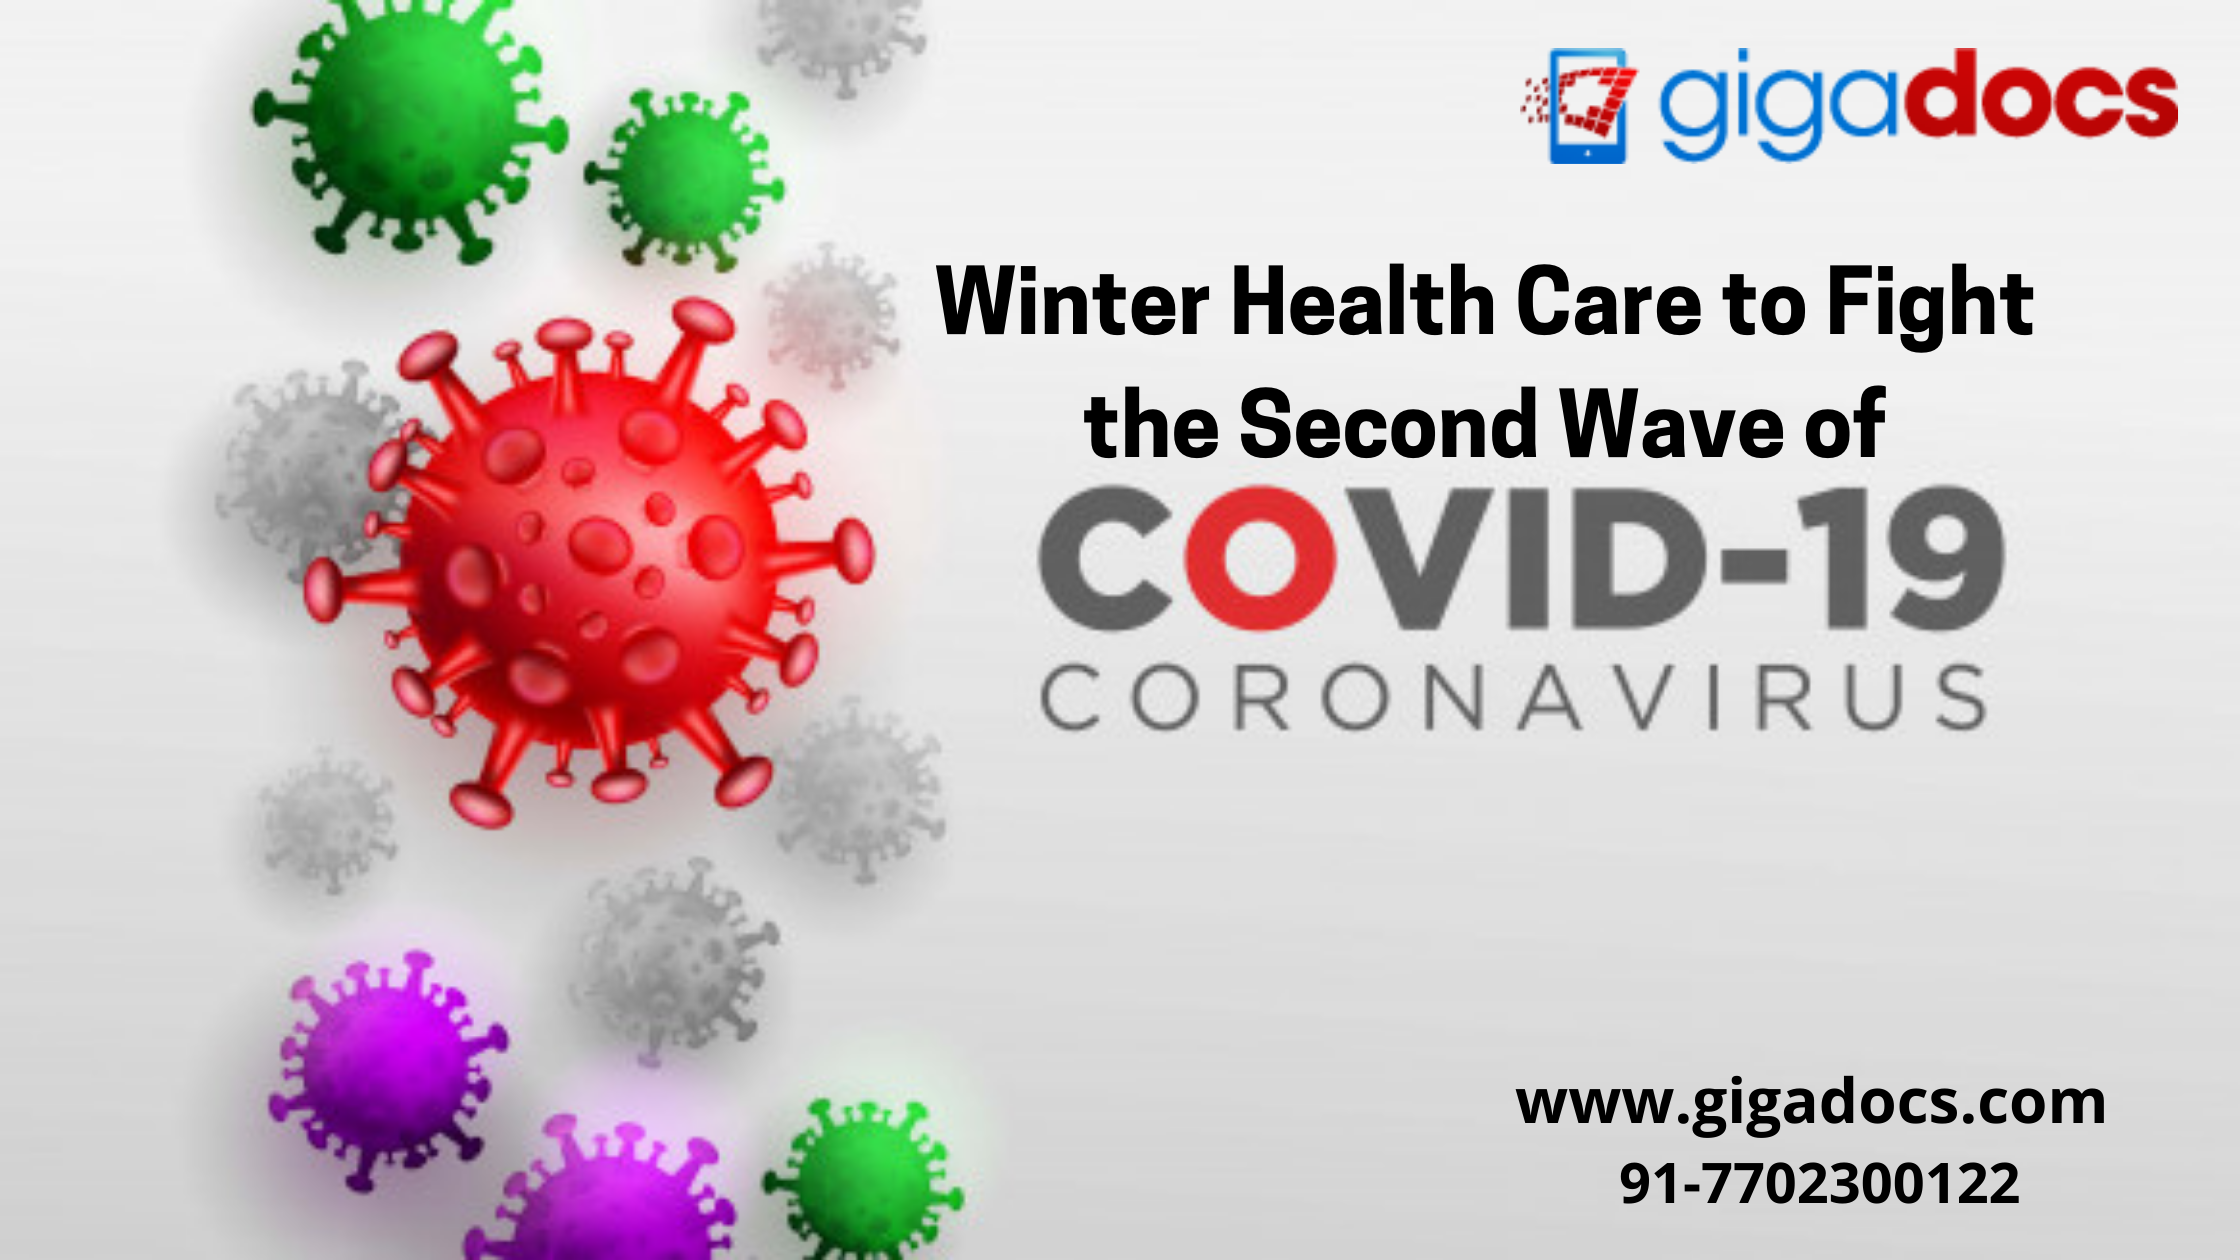 How to fight the second wave of the Covid-19 pandemic?